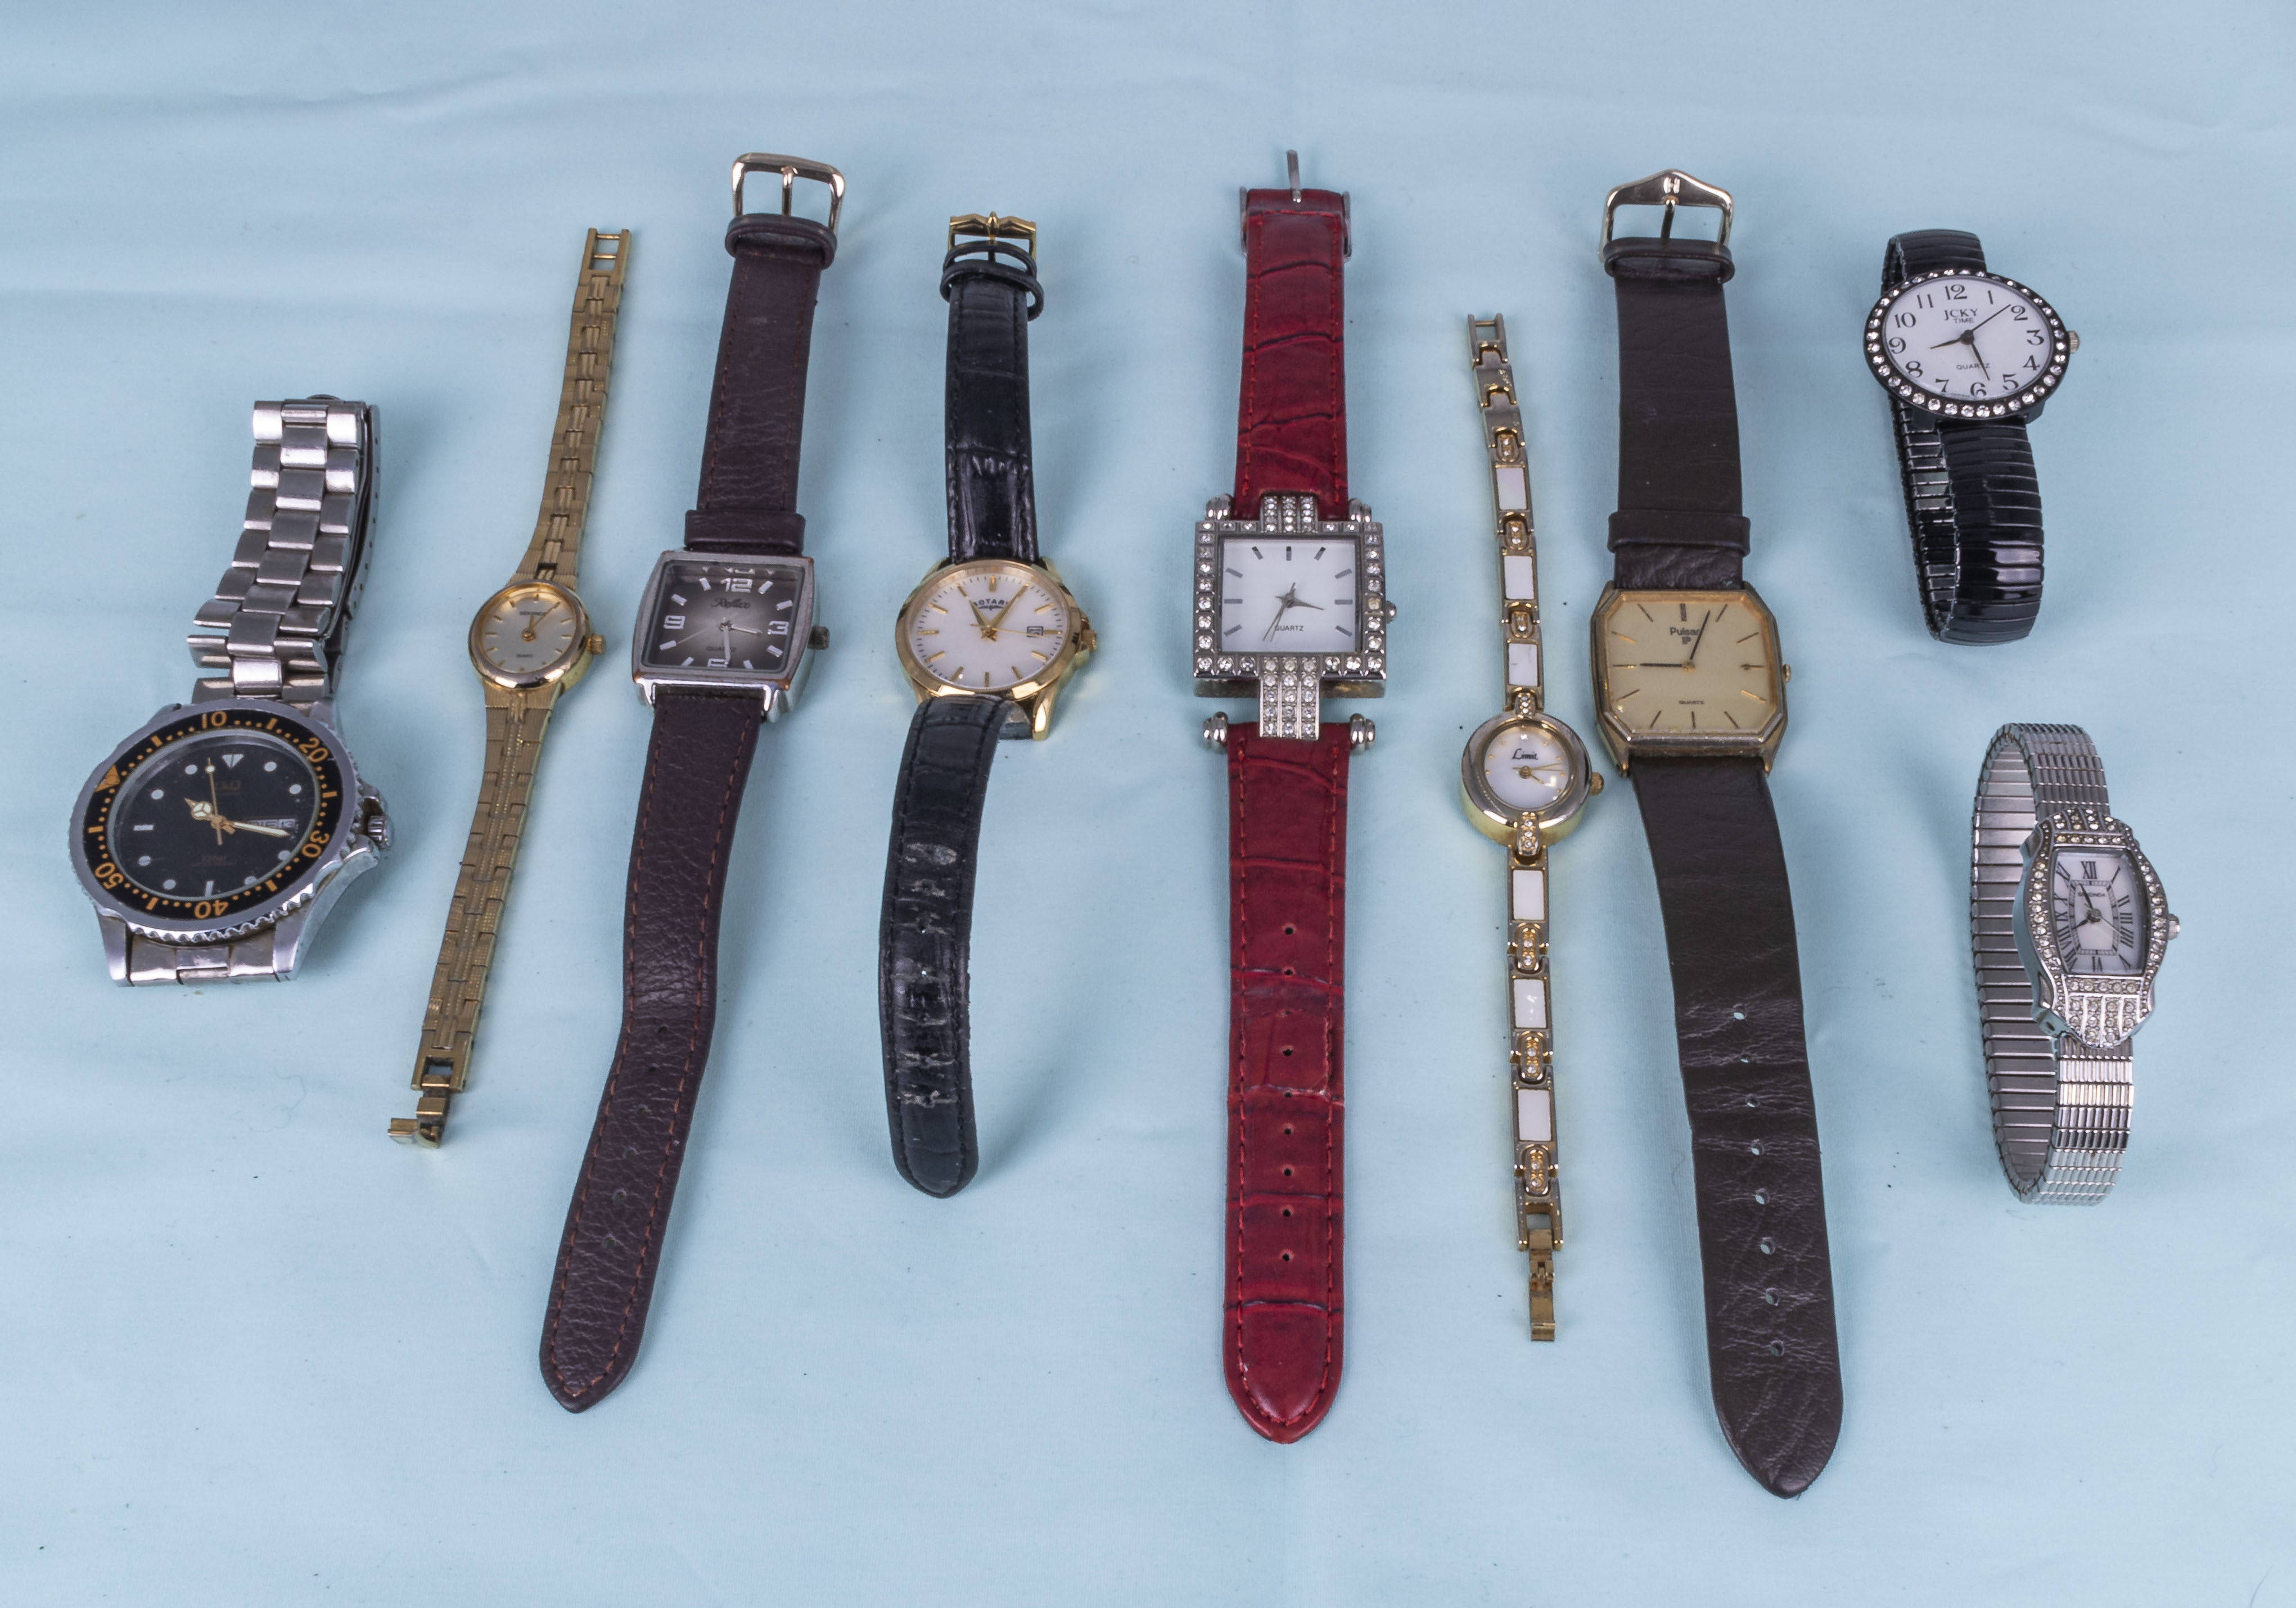 Nine miscellaneous wrist watches, Pulsar, Sekonda, limit and others